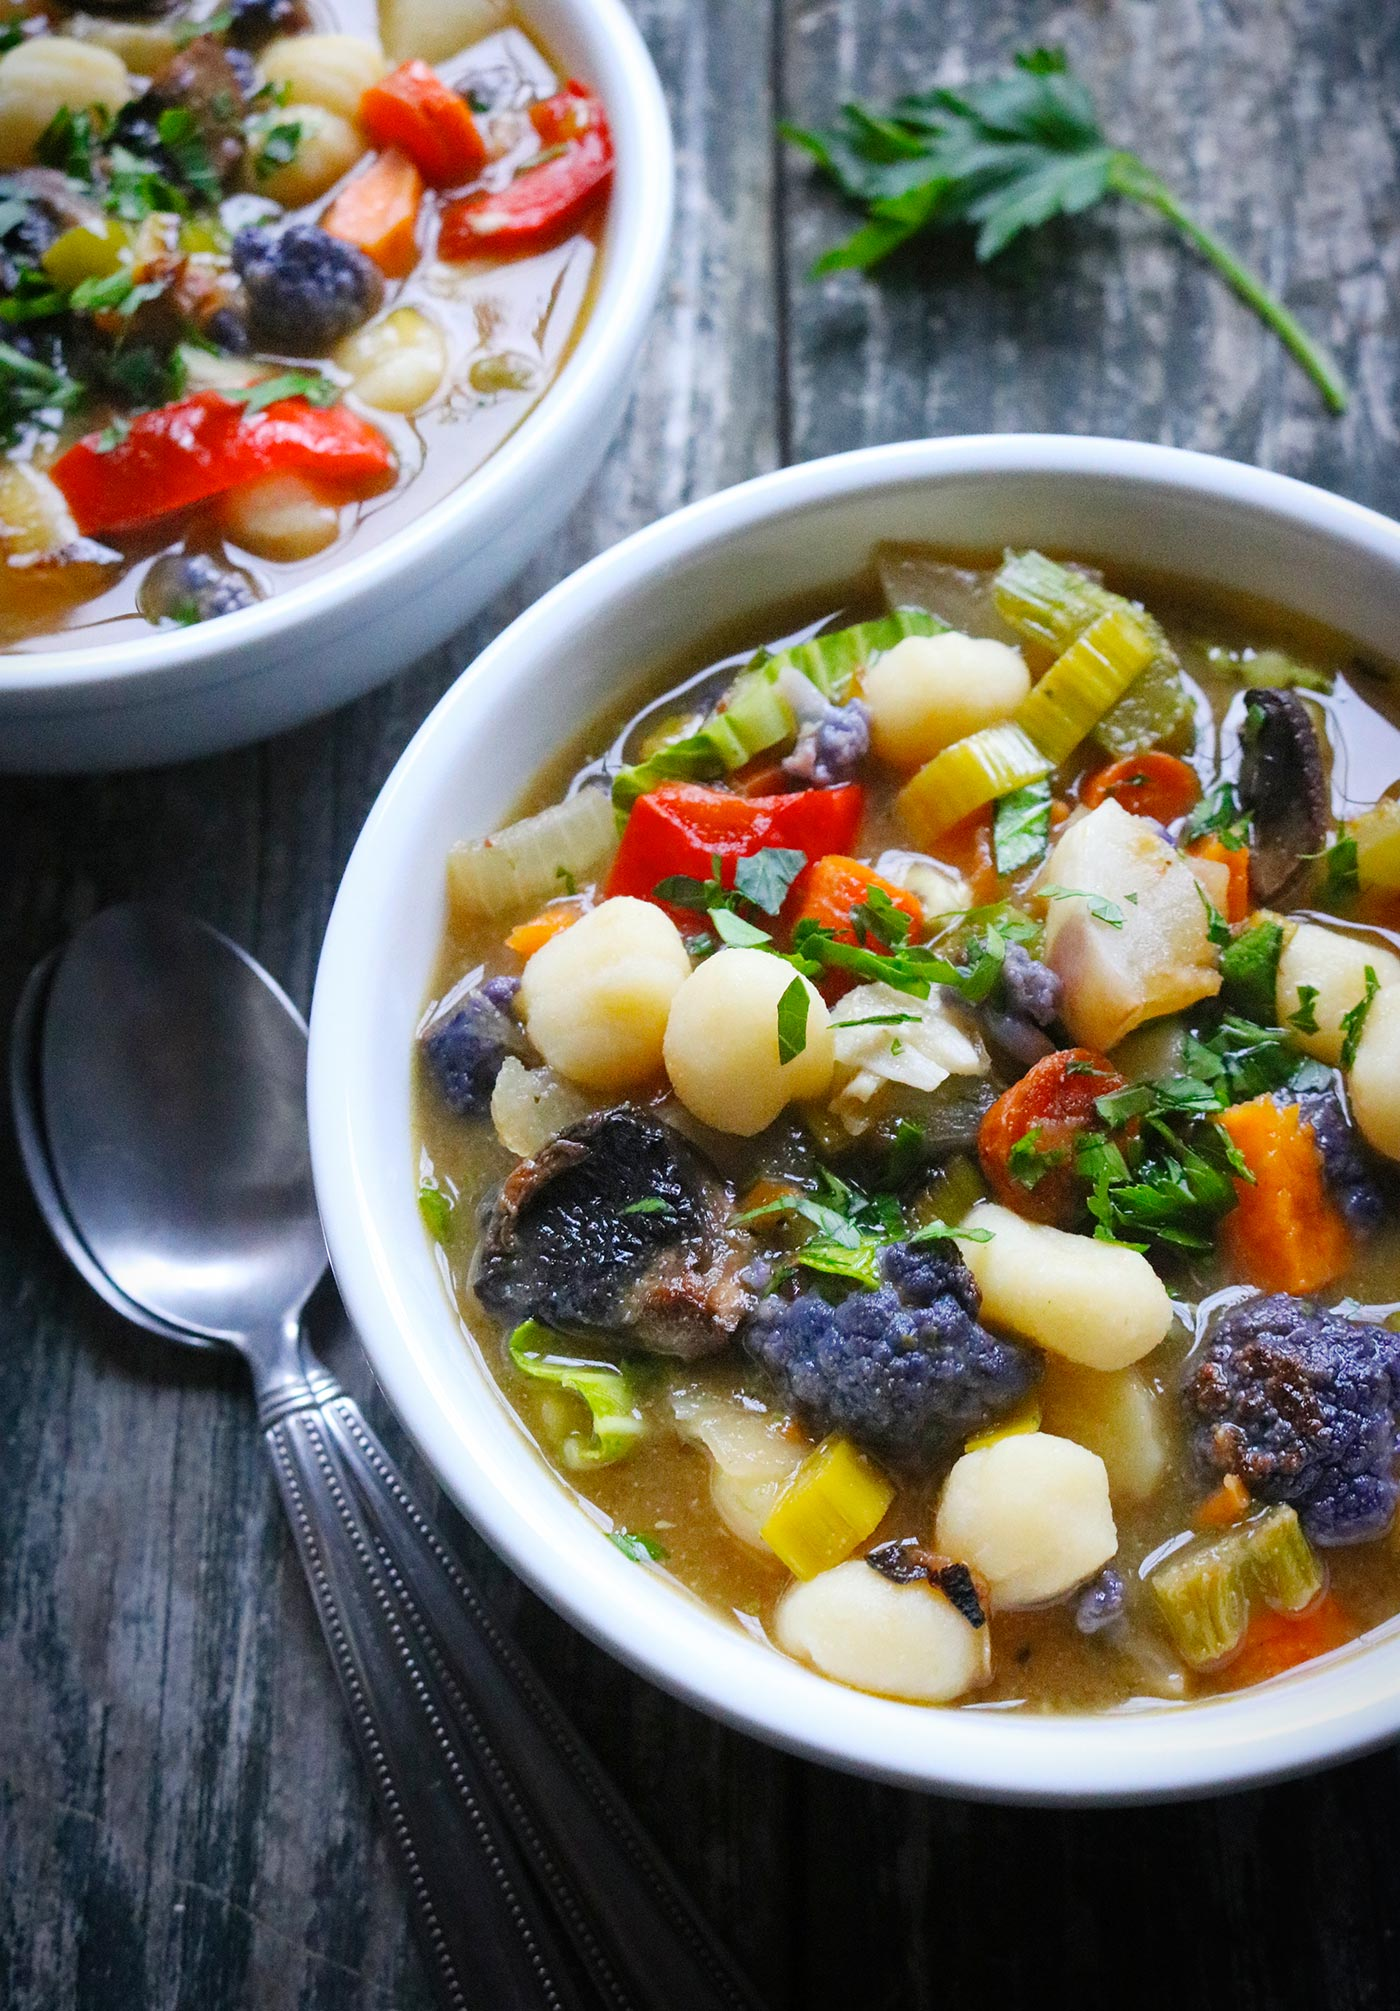 Sheet Pan Roasted Vegetable Soup with Gnocchi from Soupaddict.com